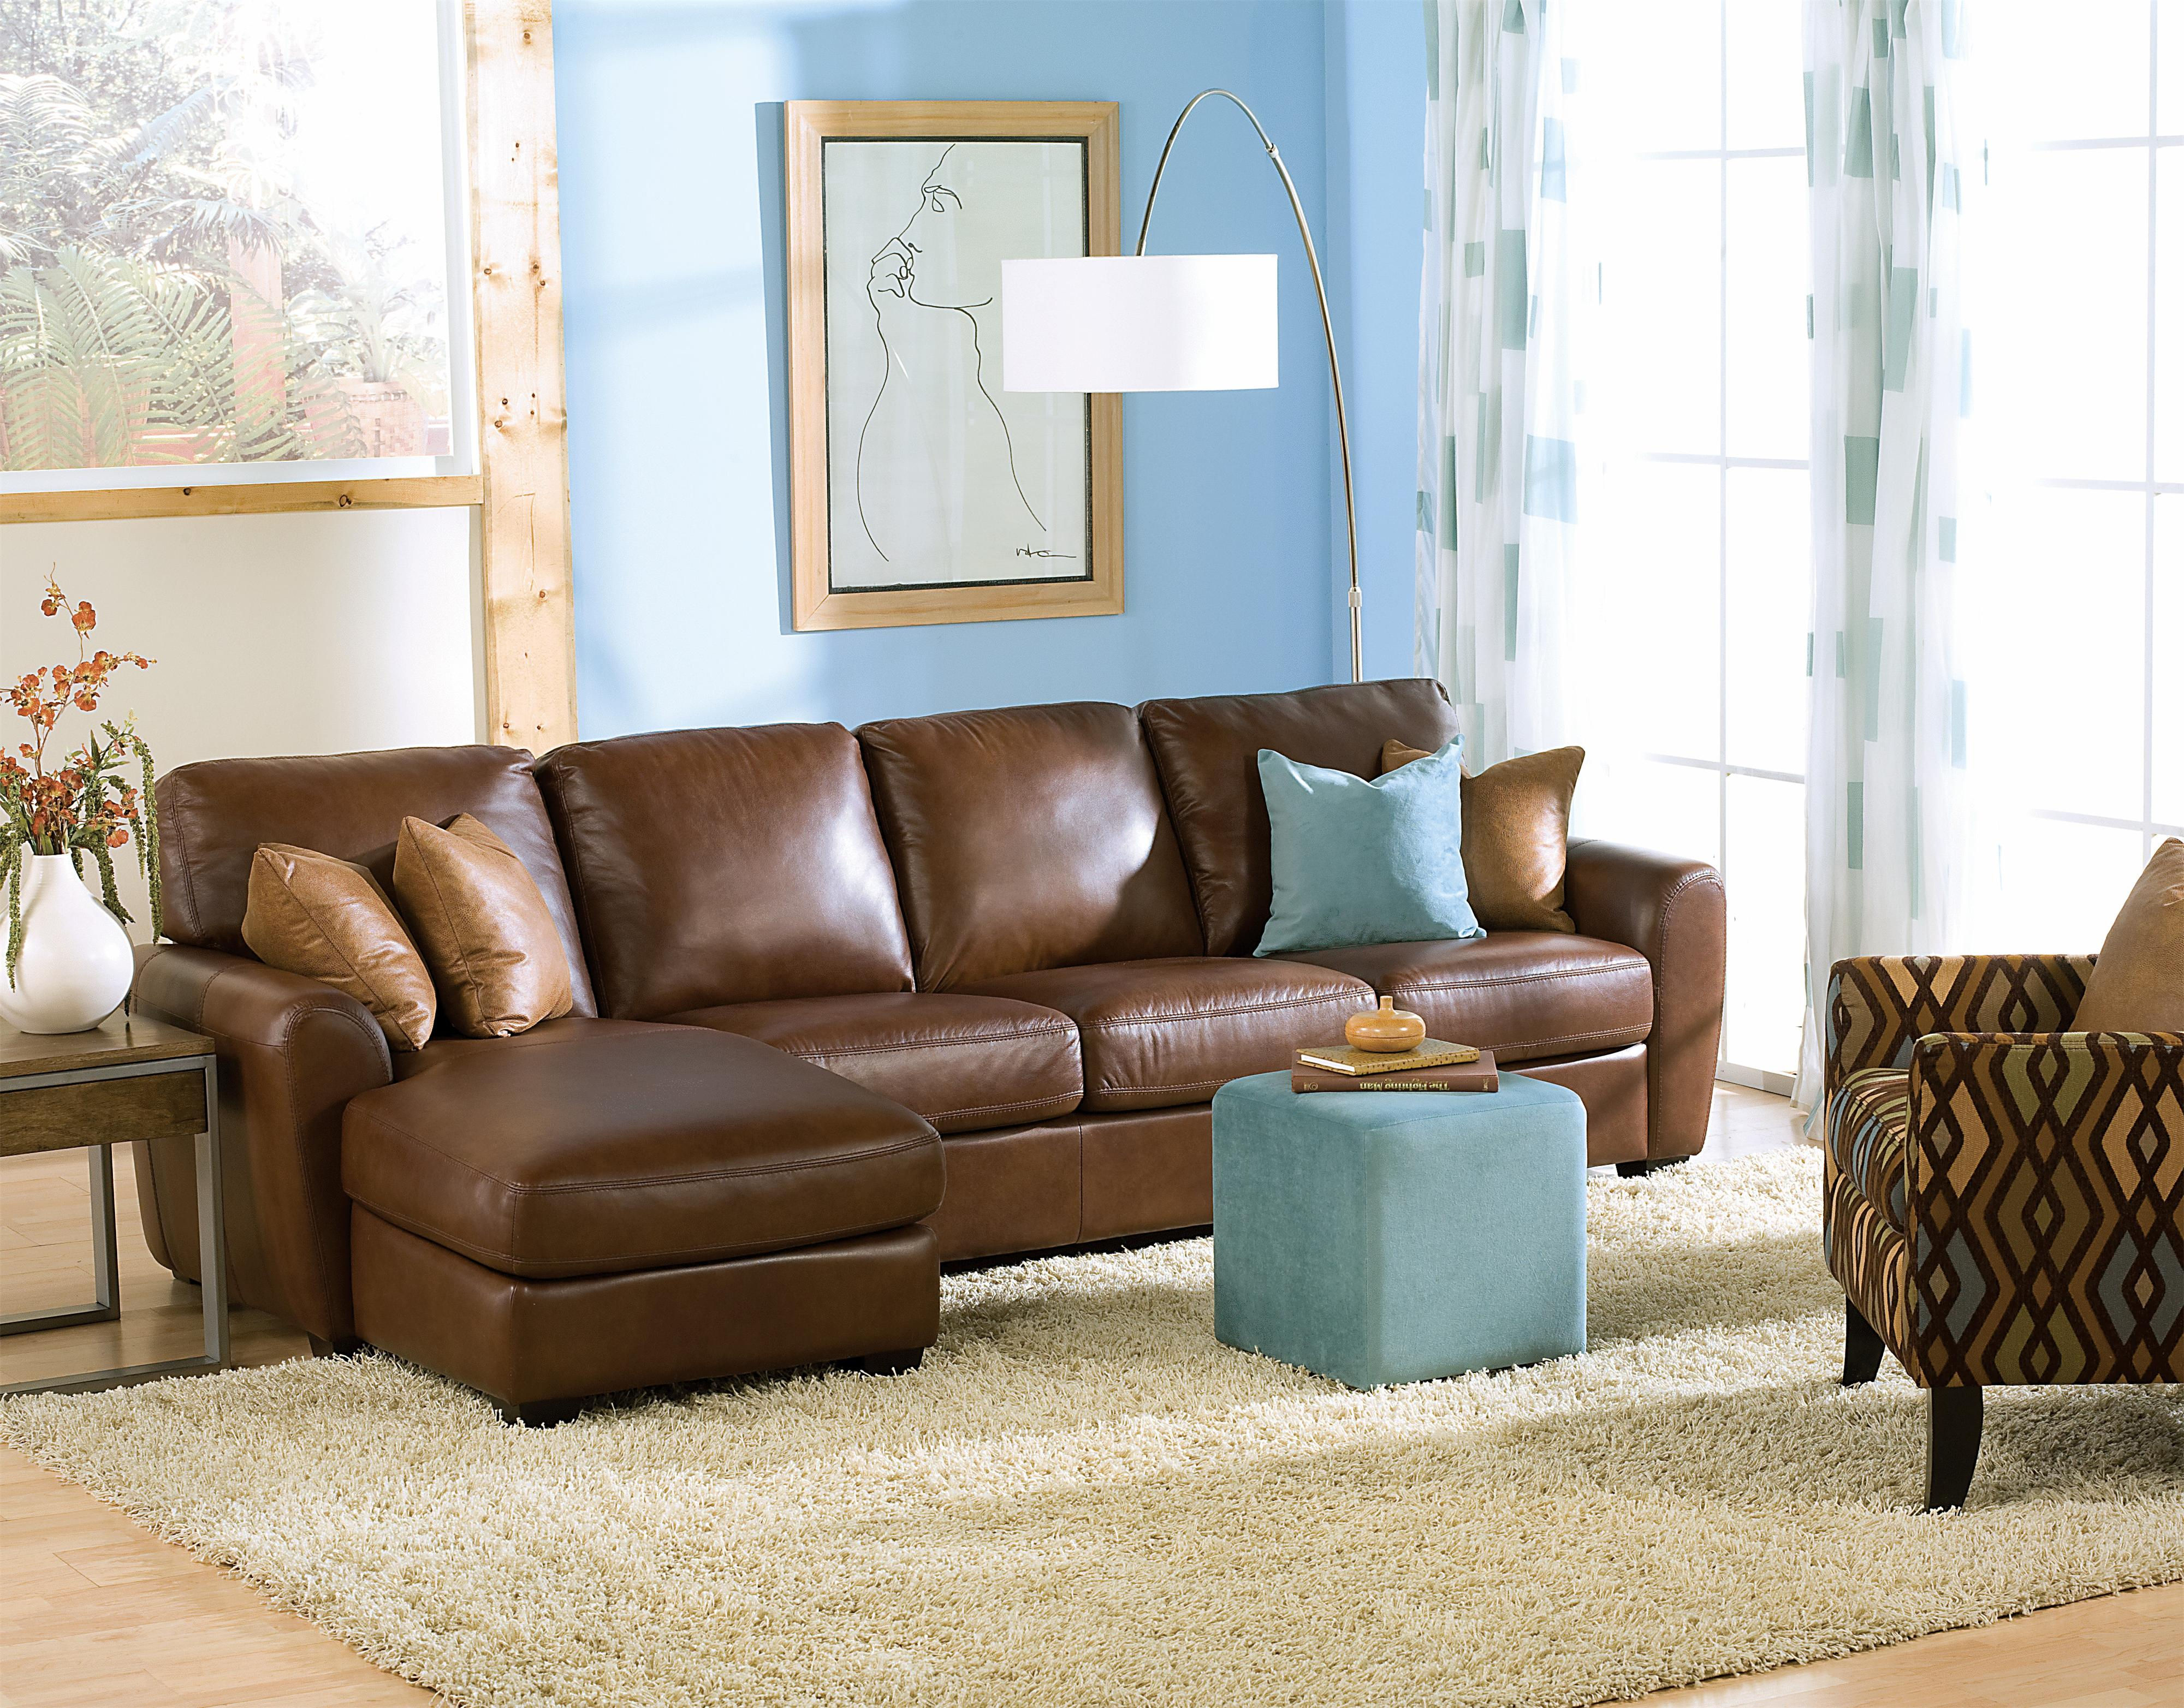 Palliser Connecticut Contemporary Sectional Sofa with LHF Loveseat